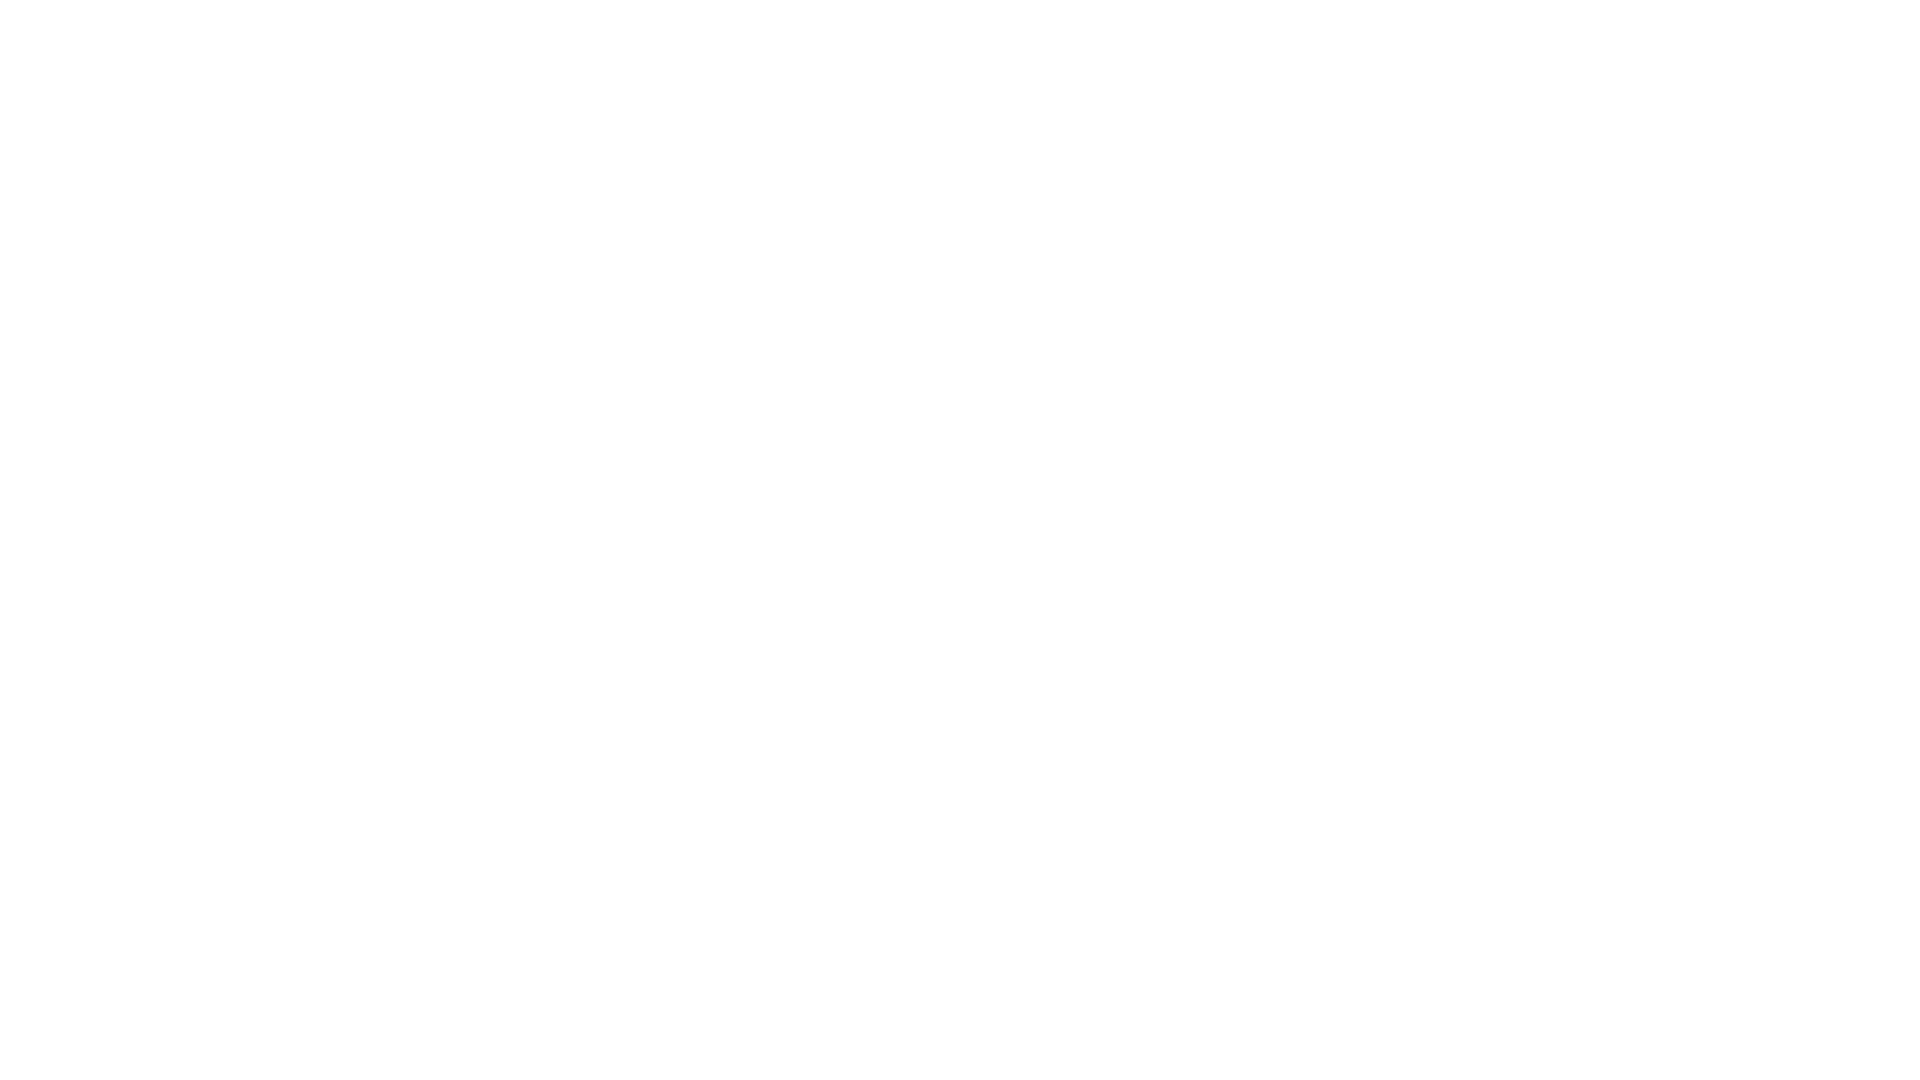 CONDITIONS WE TREAT.png